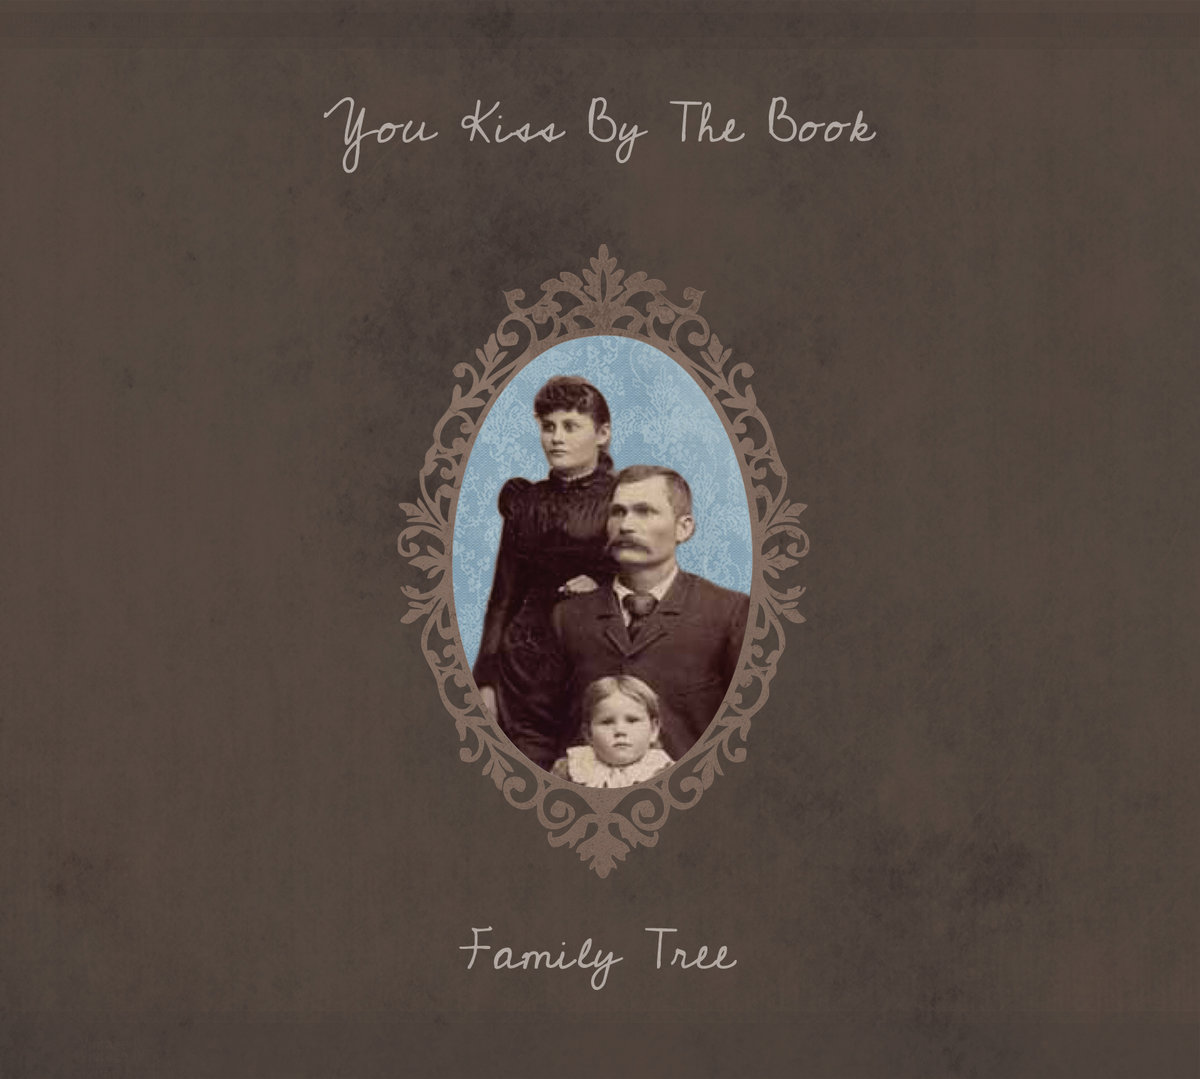 Genealogy Book Cover Design : Family tree you kiss by the book